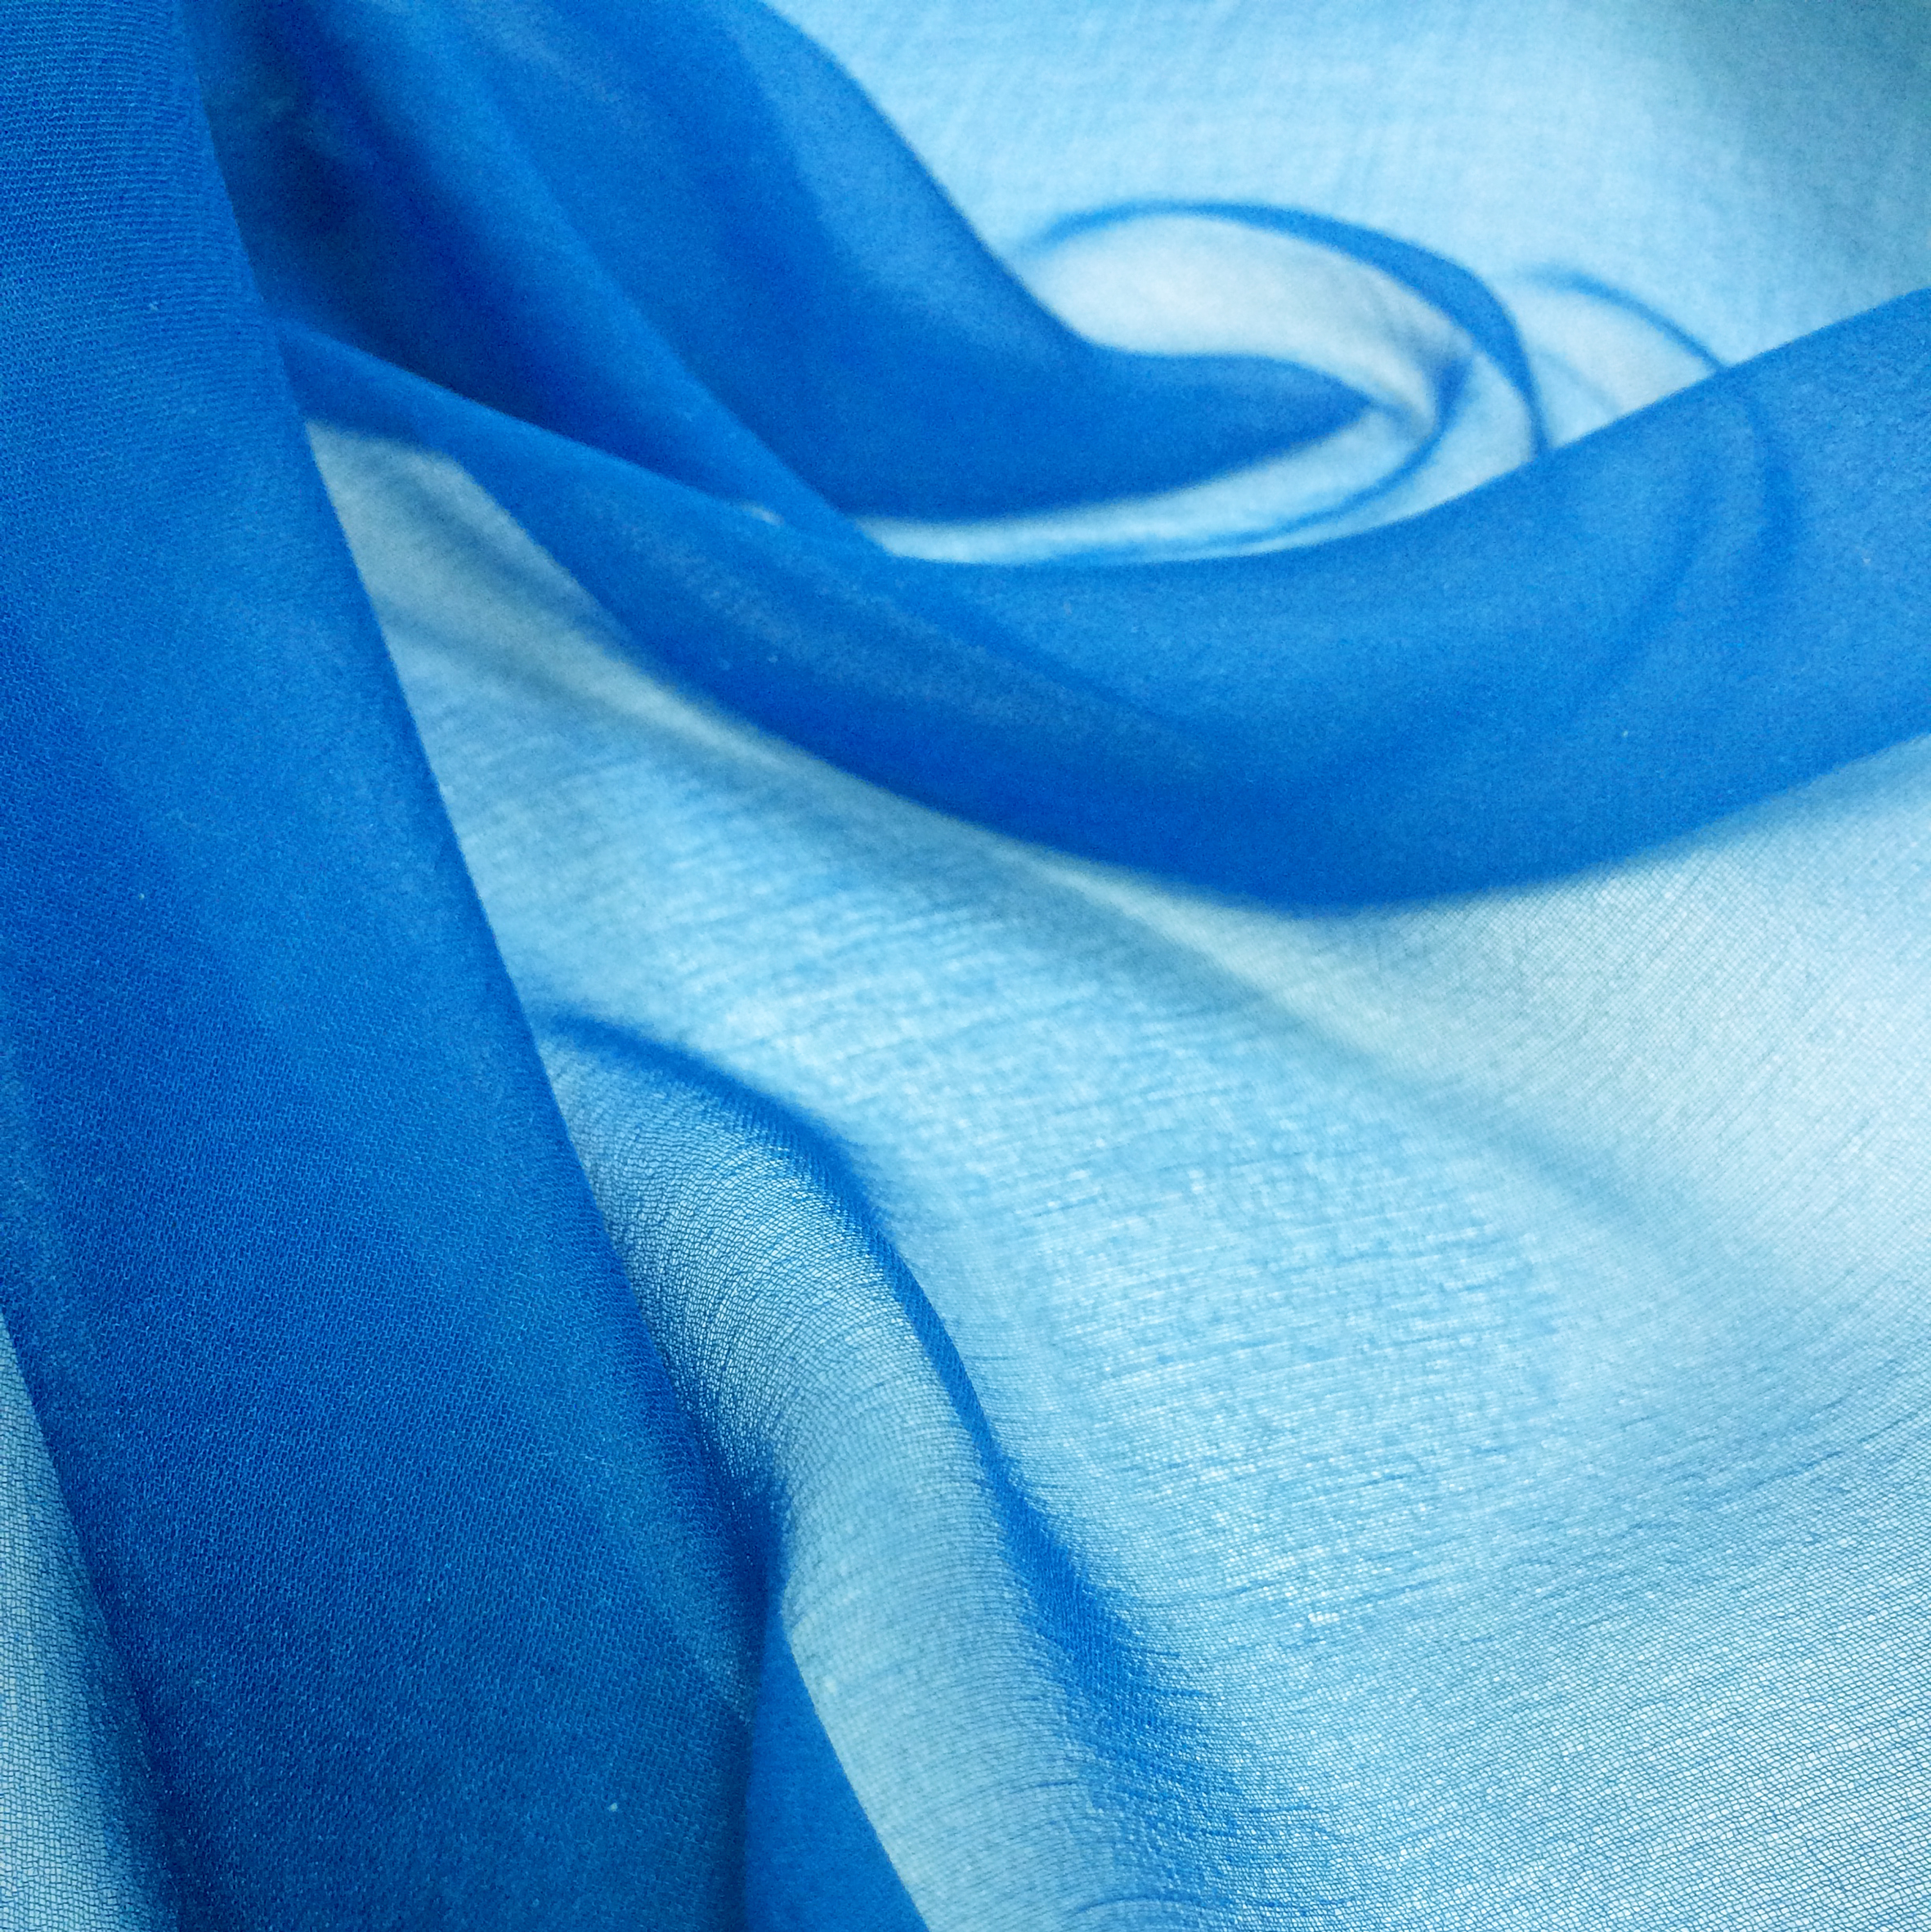 FRENCH CHIFFON PLAIN DYED